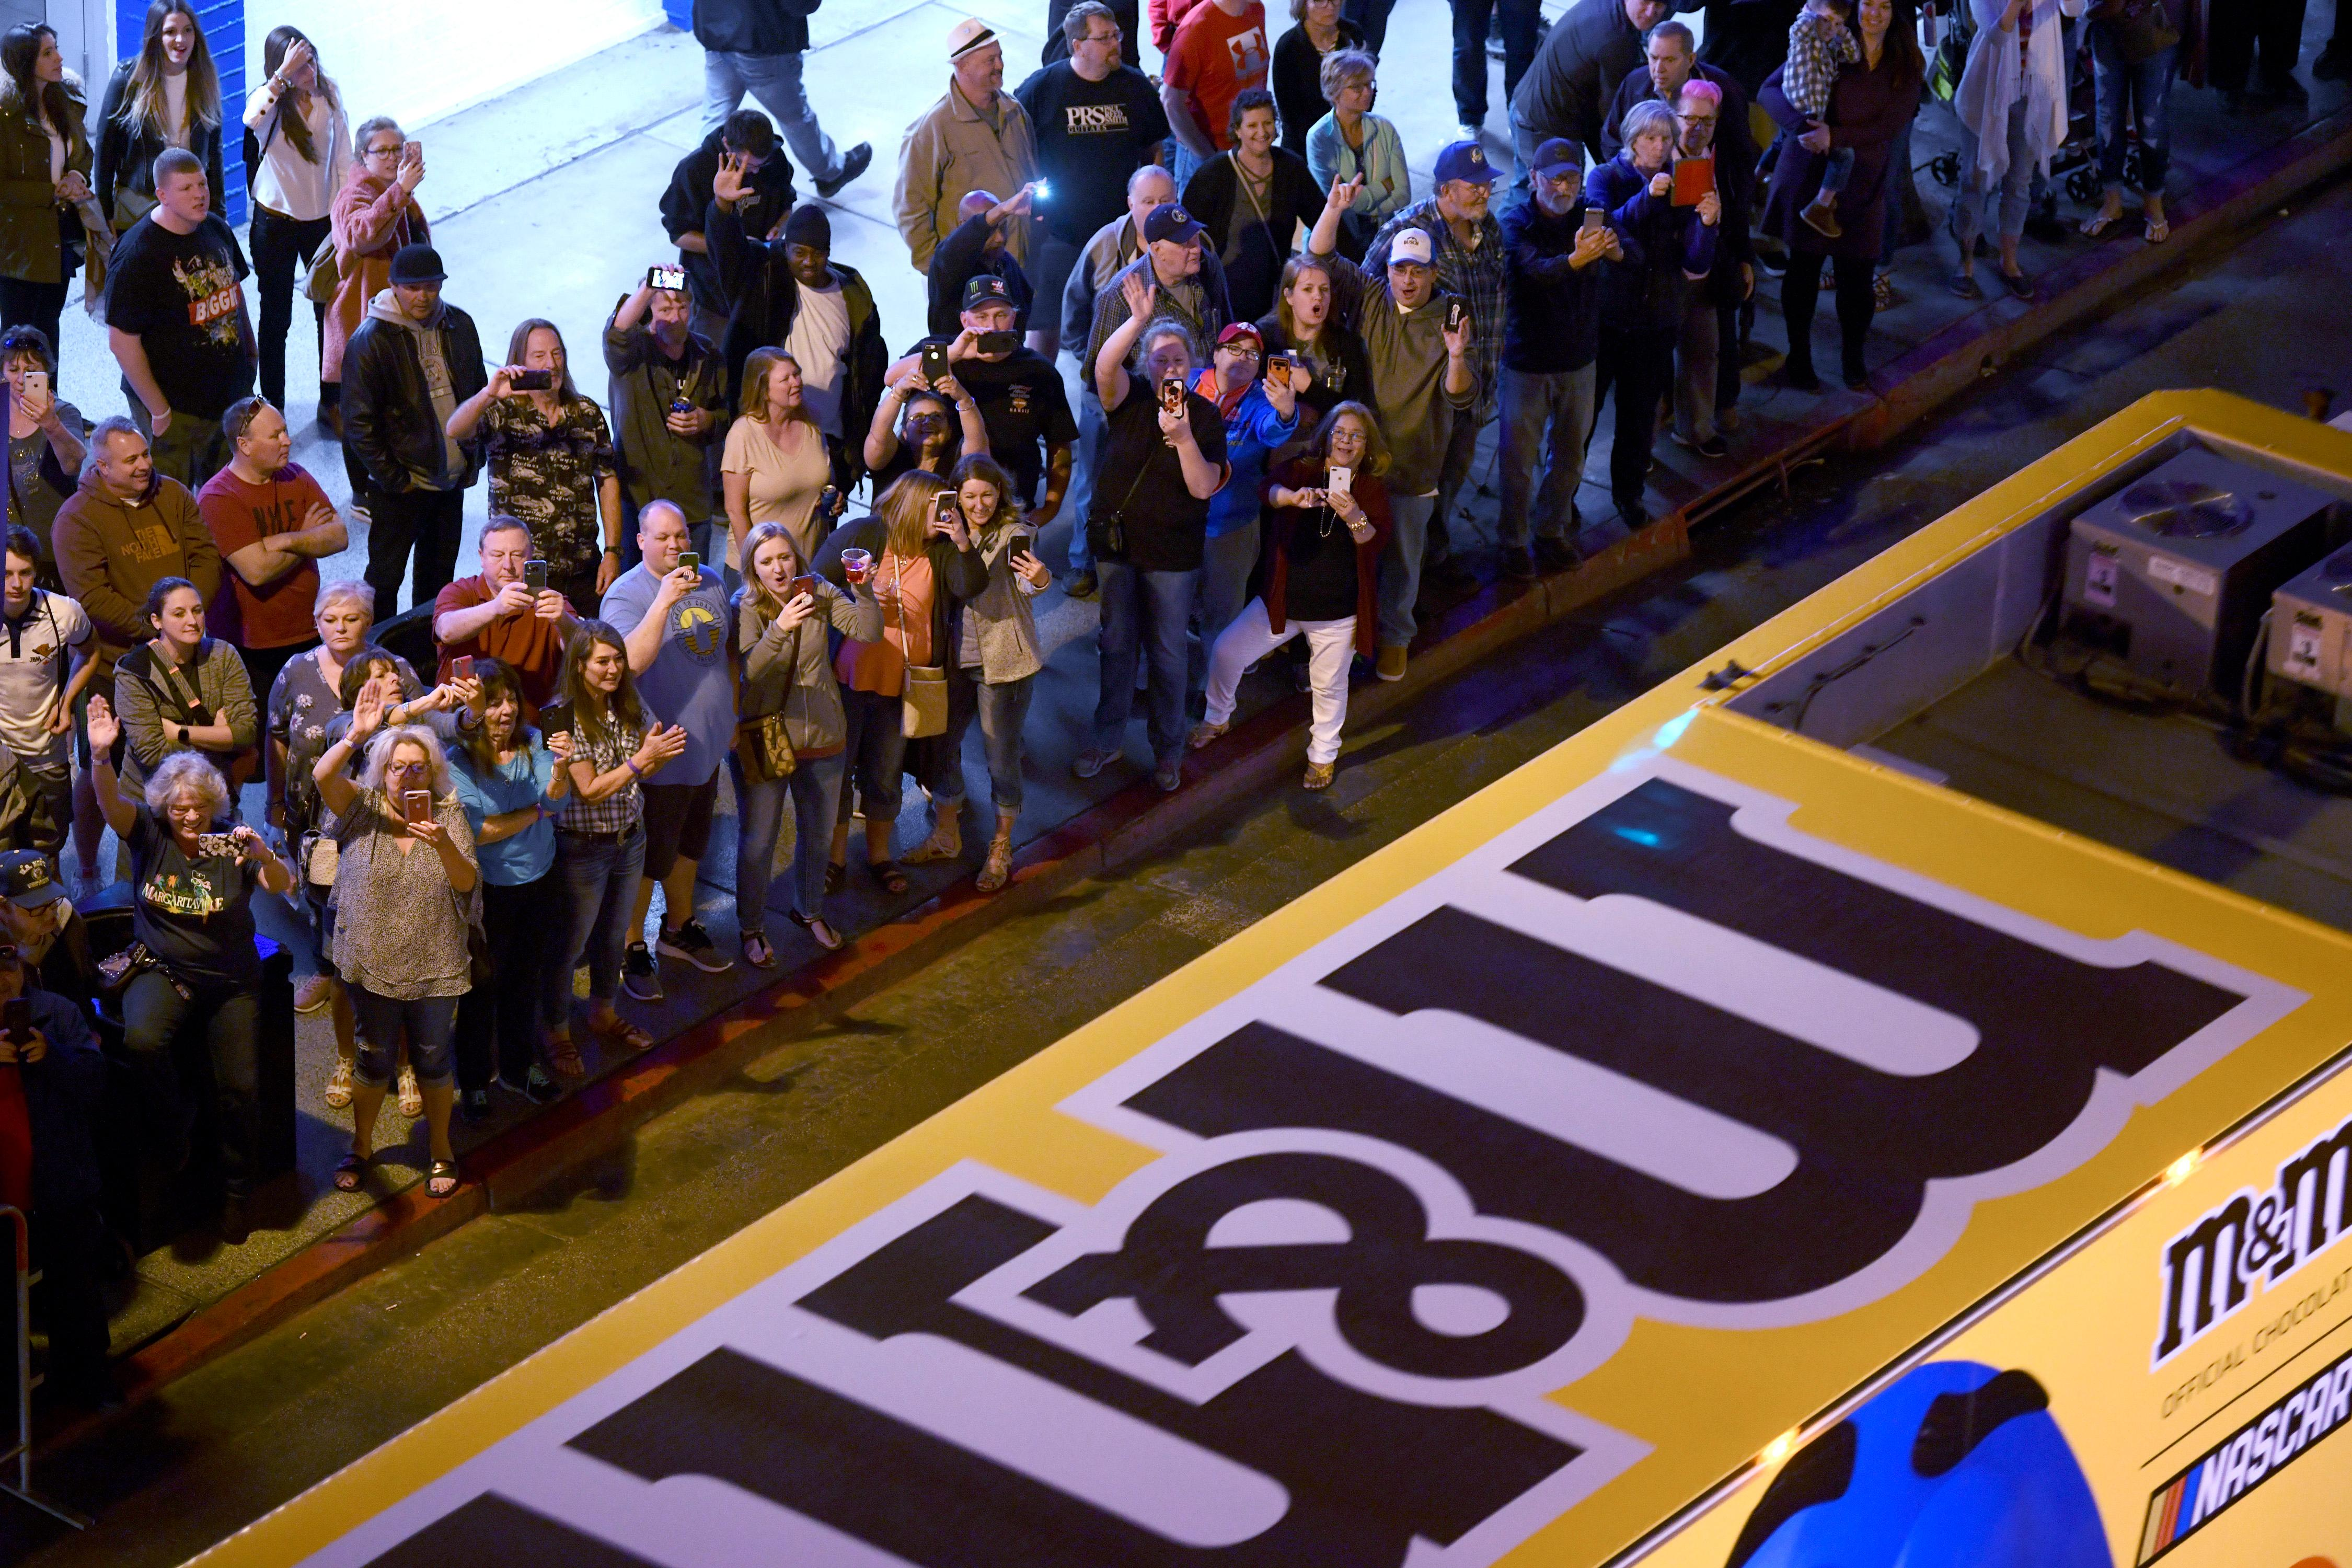 Fans cheer as NASCAR haulers parade up Fourth Street as the Ultimate Vegas Sports Weekend gets underway Thursday, February 28, 2019. (Sam Morris/Las Vegas News Bureau)